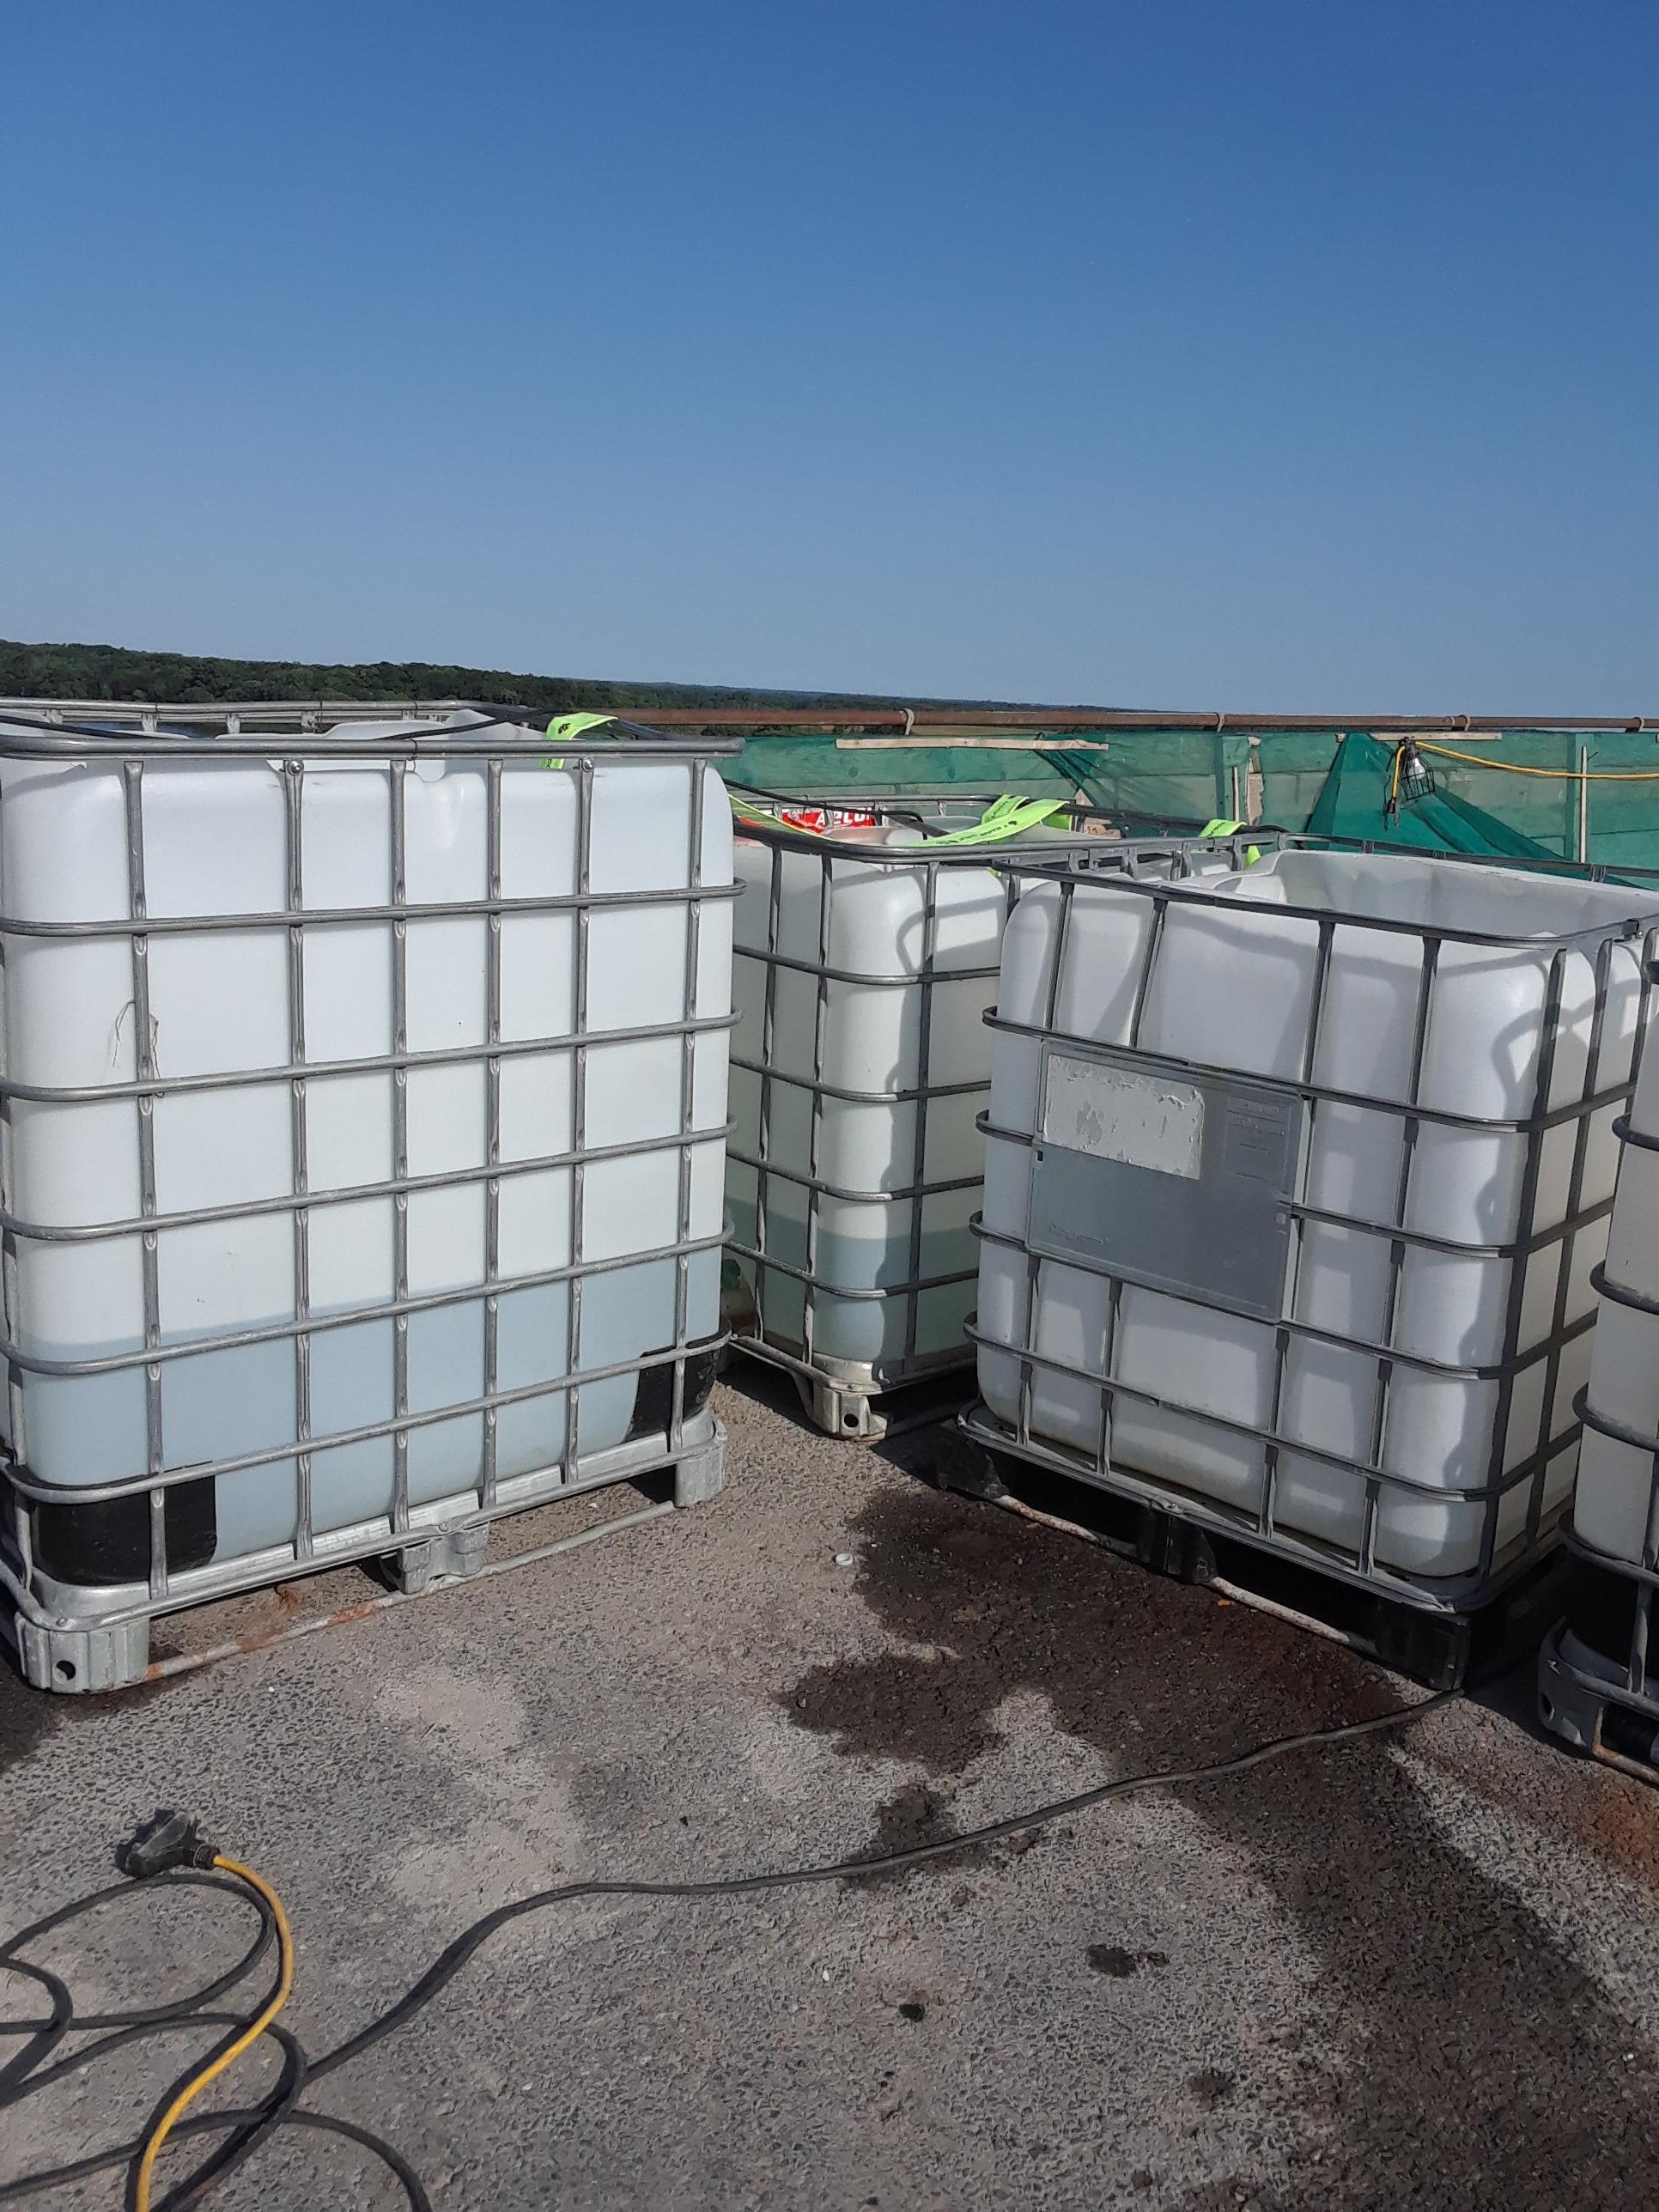 Water holding tanks to keep the fresh concrete wet